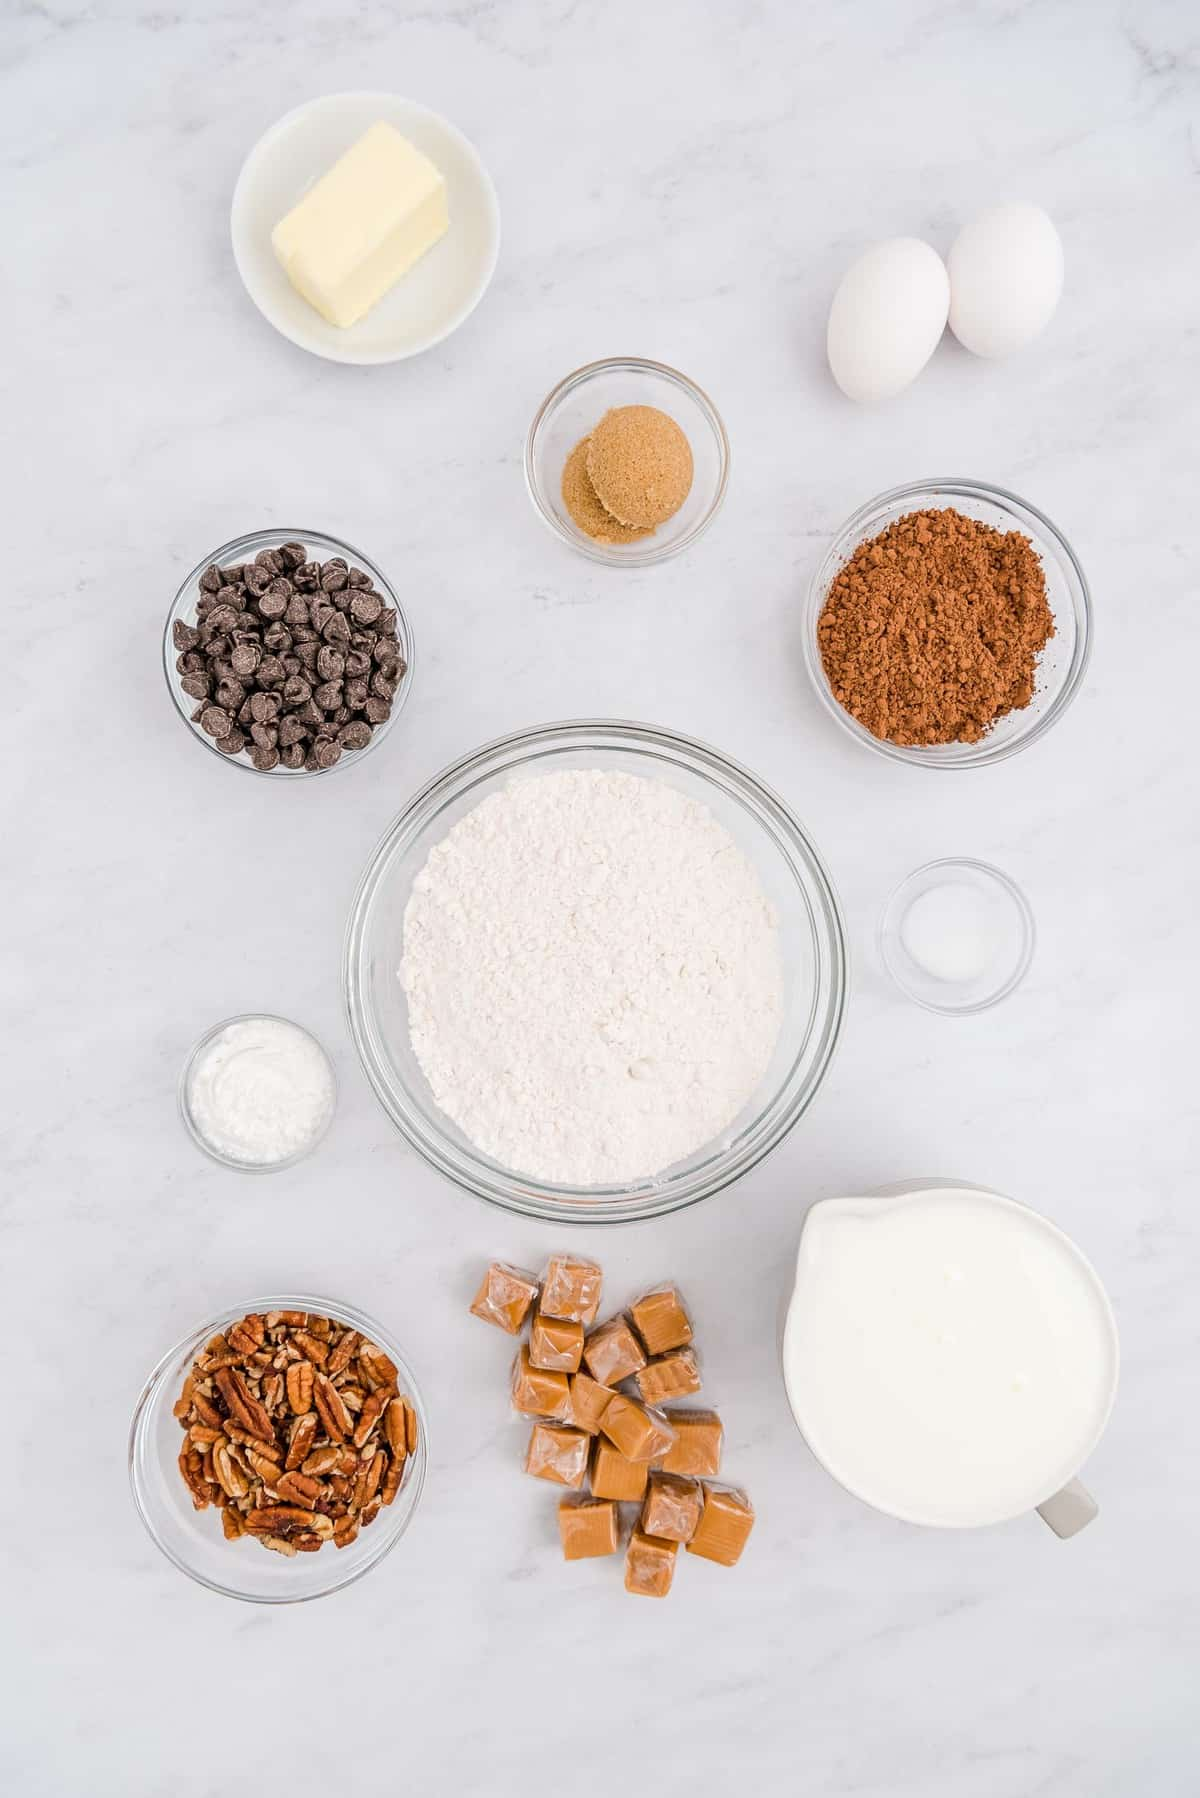 Overhead view of bowls of ingredients including caramel, pecans, flour, cocoa powder.